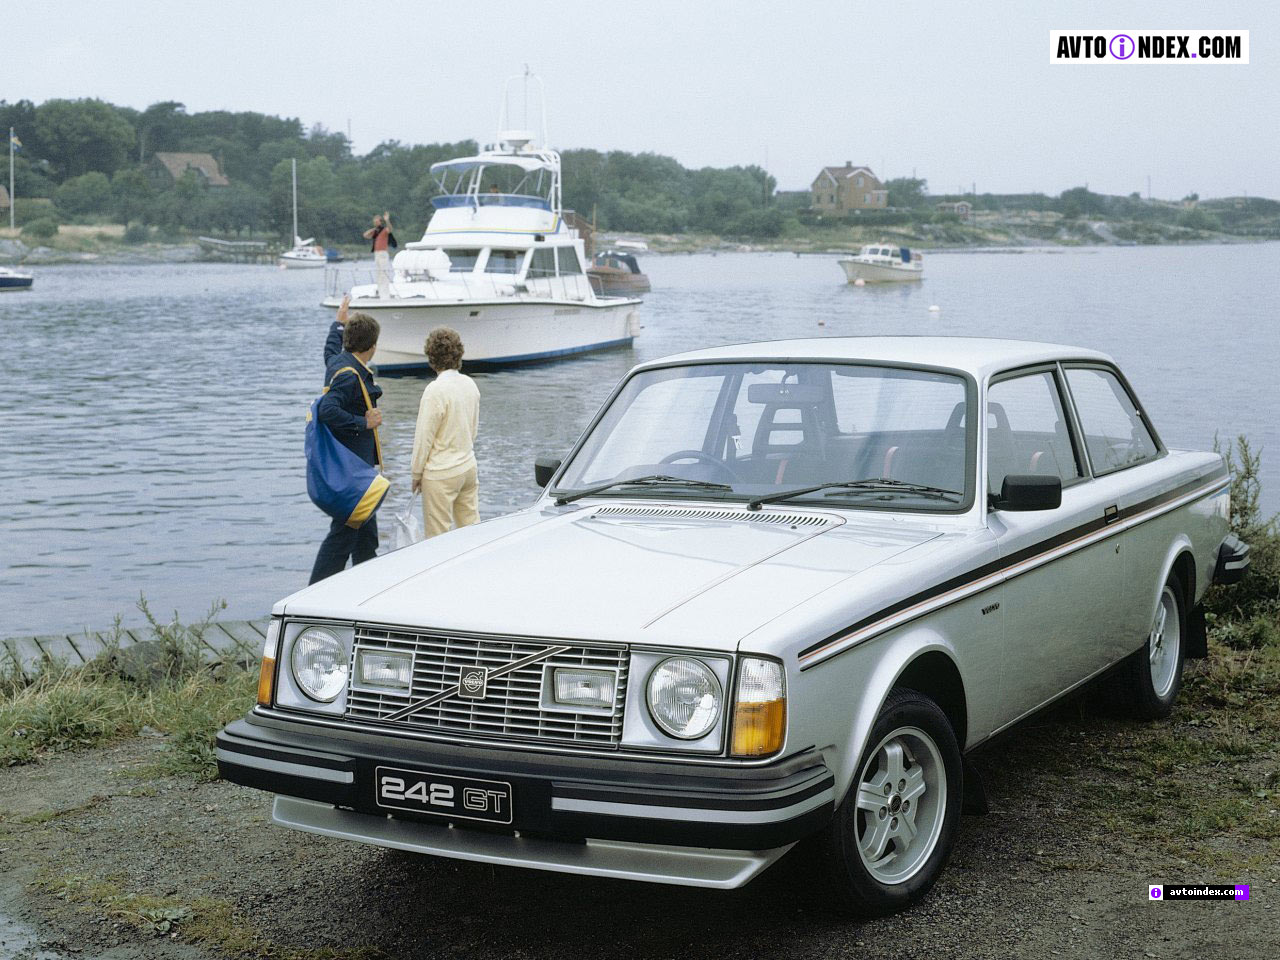 Volvo 242GT. View Download Wallpaper. 1280x960. Comments